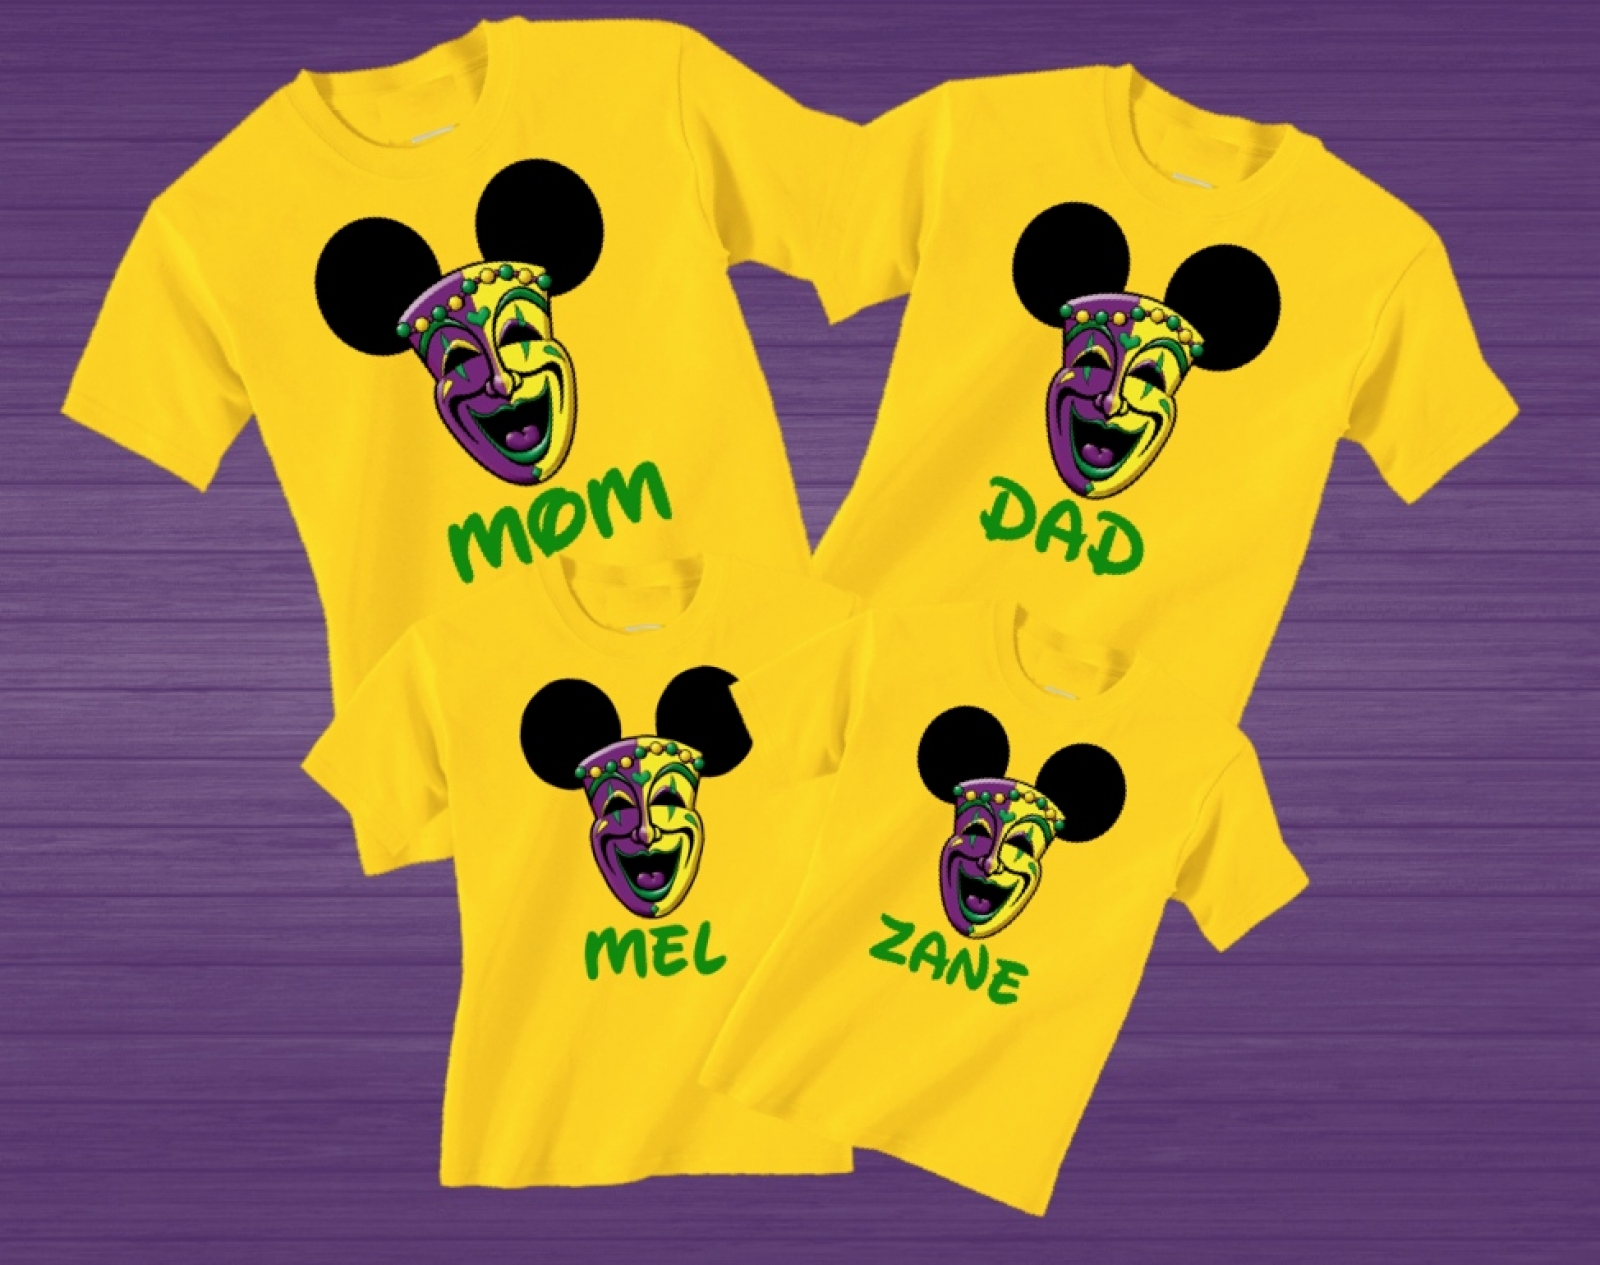 cc1842da Disney Mardi Gras Family Vacation T Shirts | The Official Site of ...